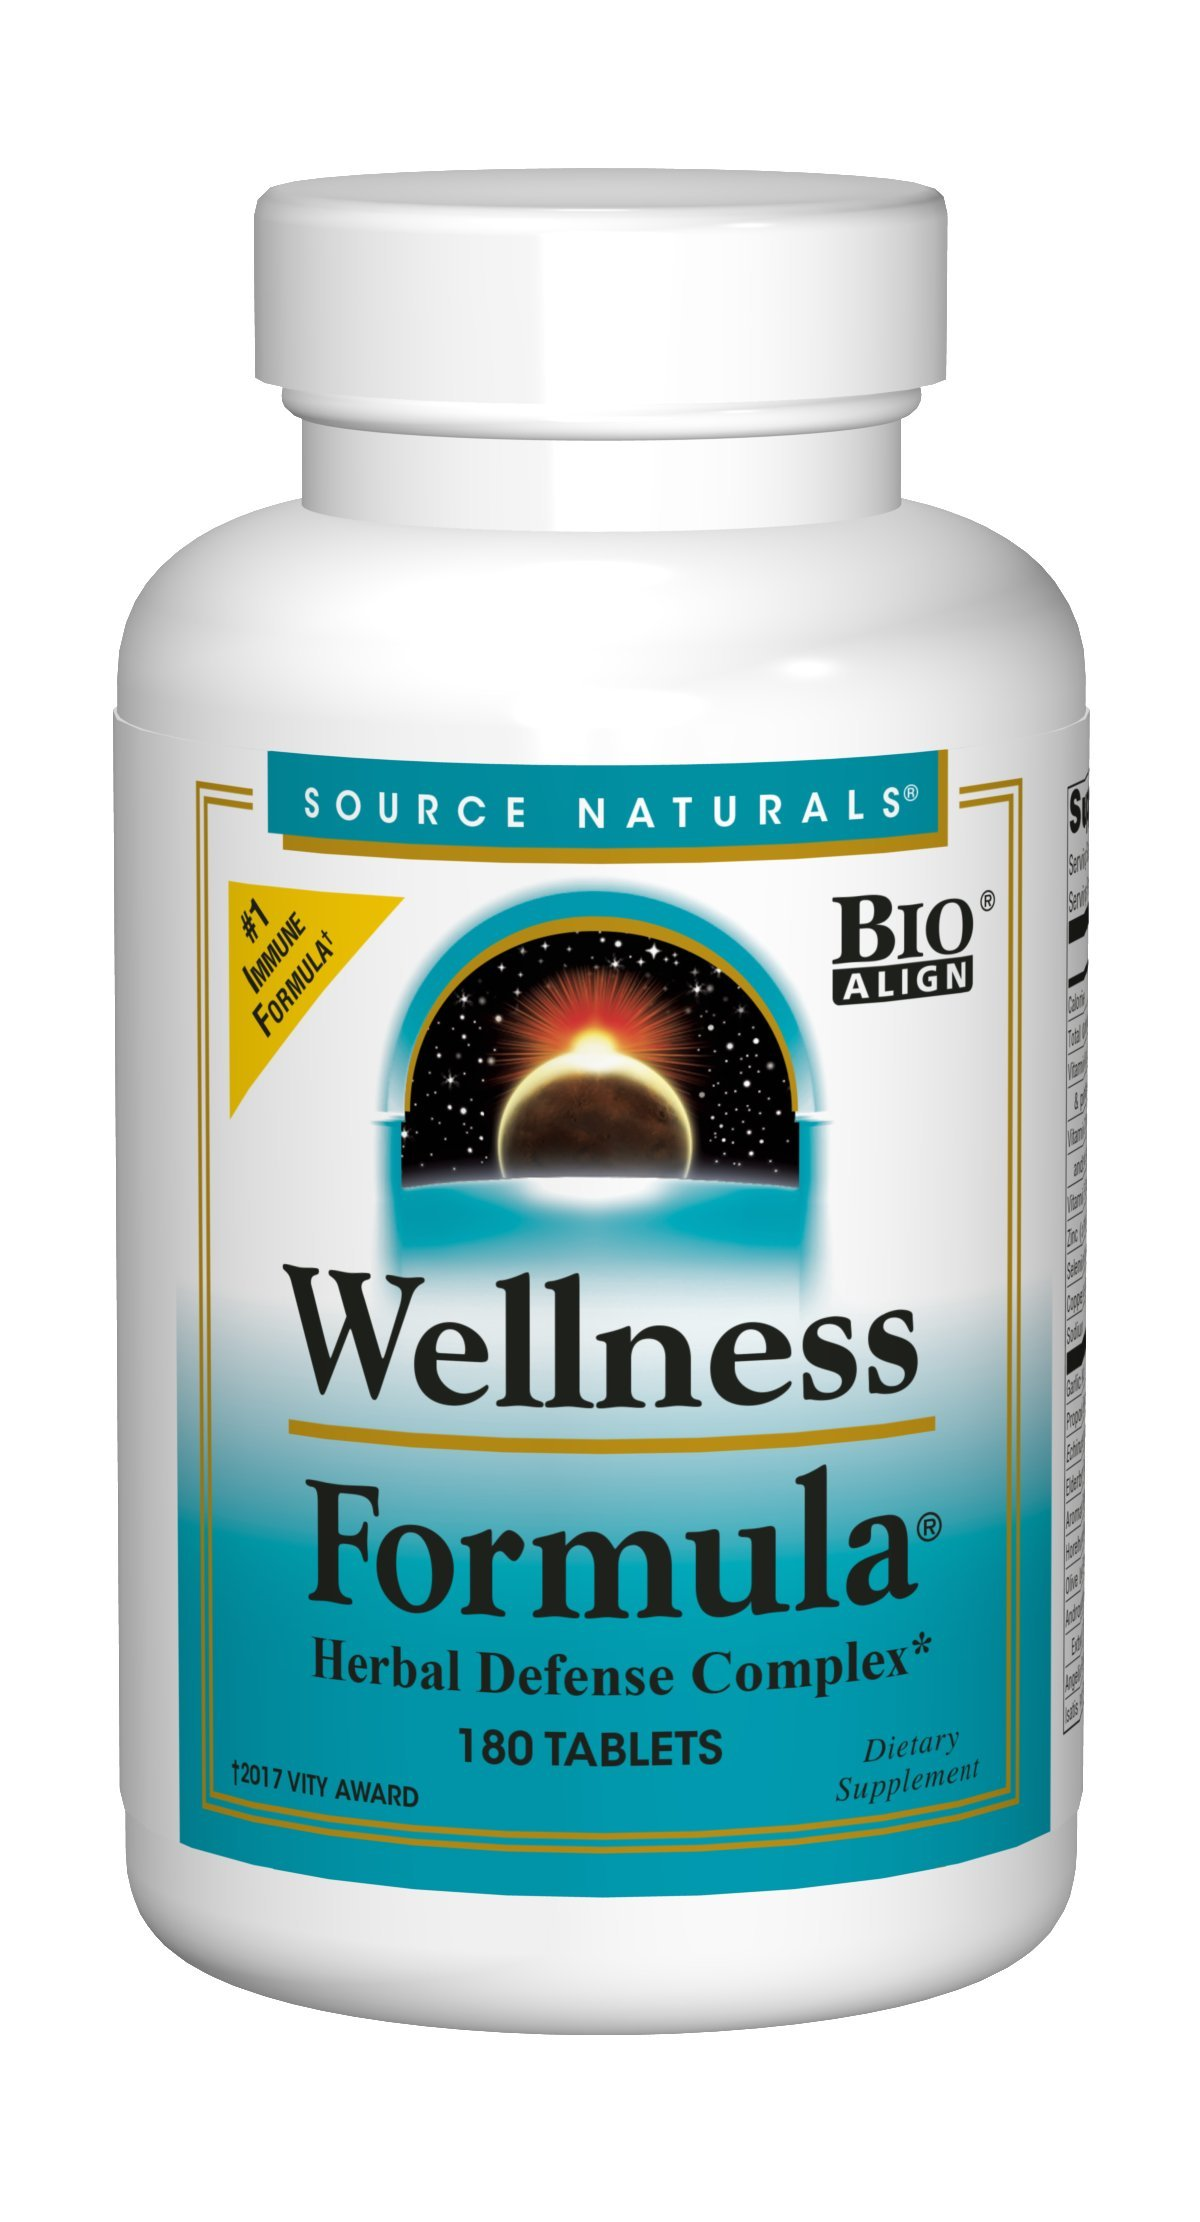 Source Naturals Wellness Formula Bio-Aligned Supplement Herbal Defense Complex Immune System Support & Immunity Booster Wholefood With Vitamins & Antioxidants - 180 Tablets